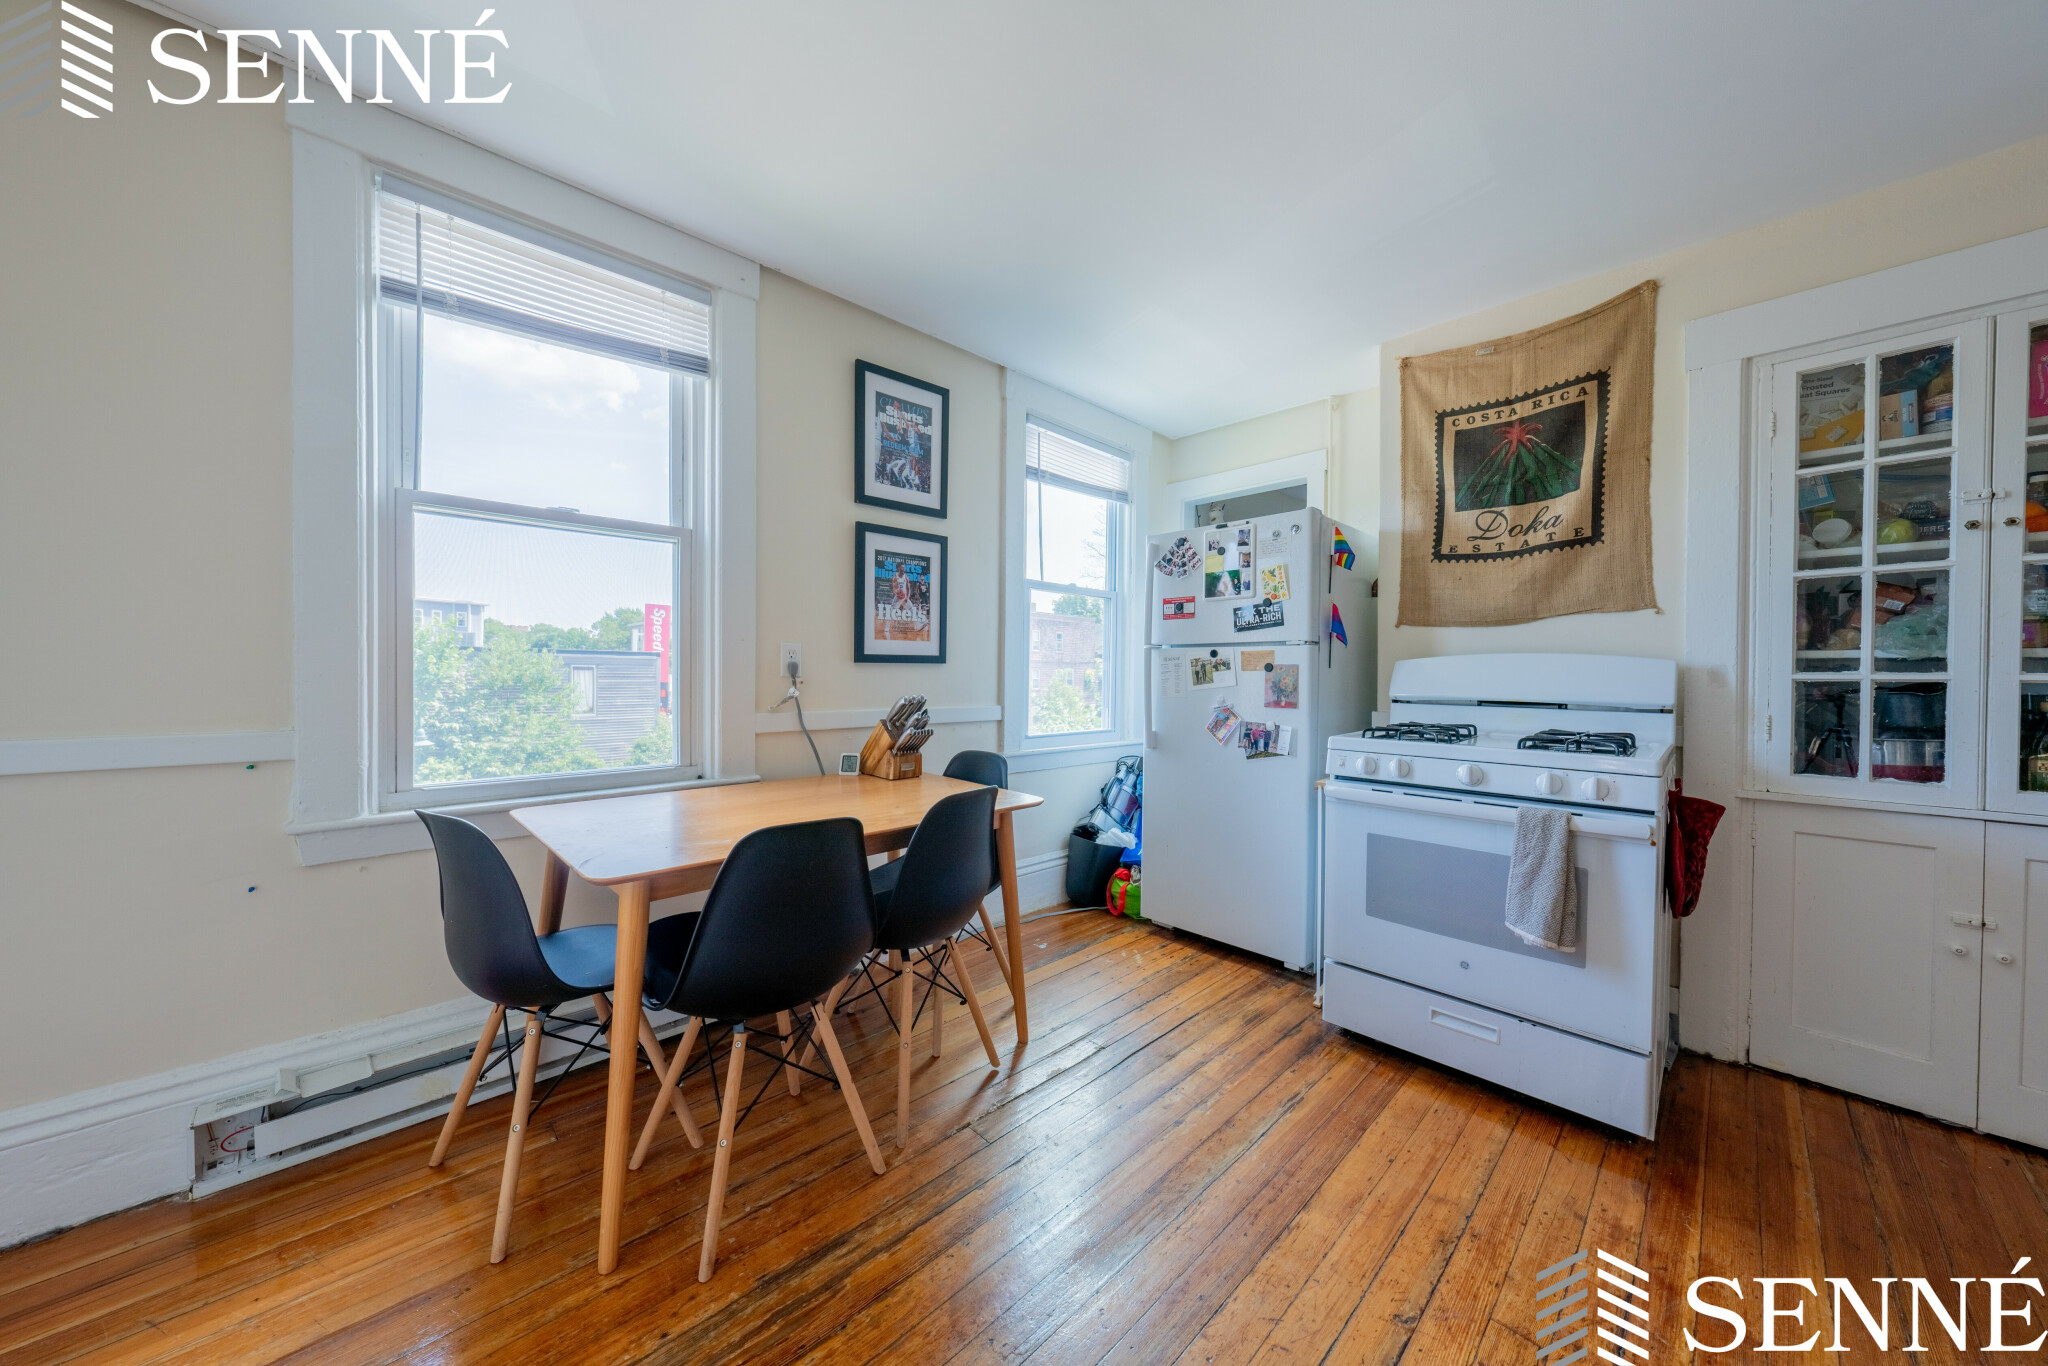 2 Beds, 1 Bath apartment in Cambridge for $2,400